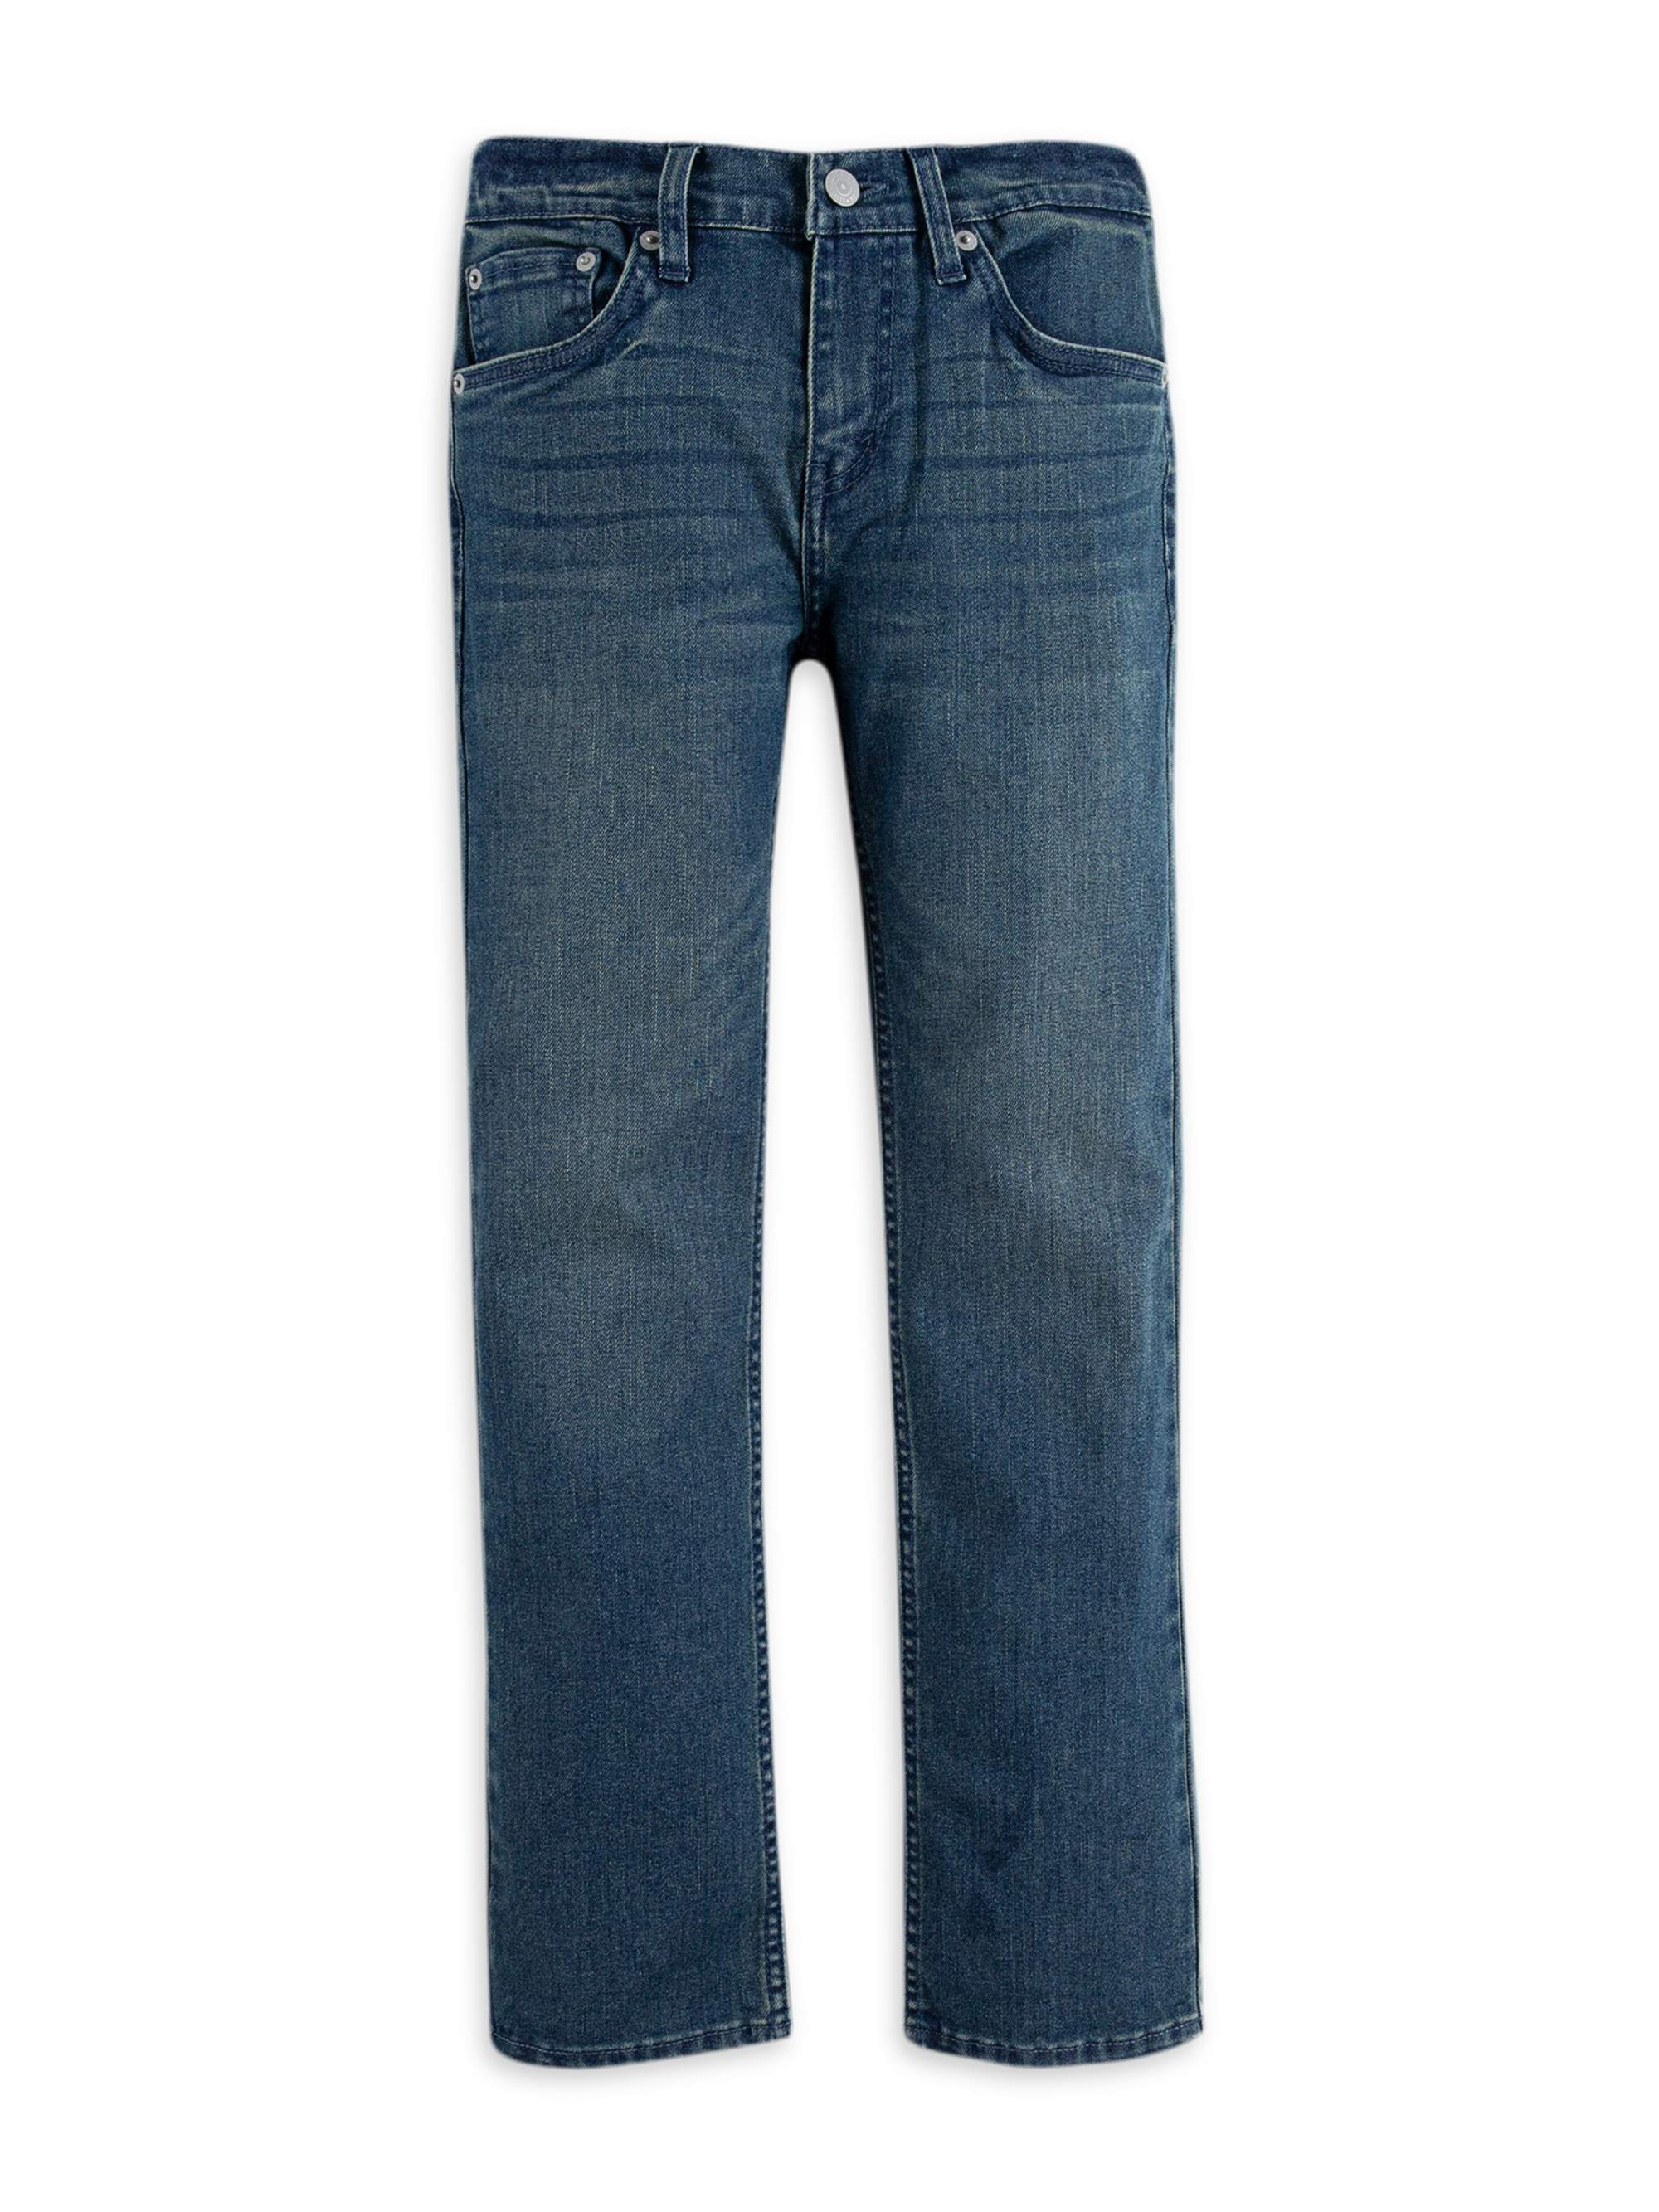 Levi's 514™ Straight Fit Jeans. Toddler Boys